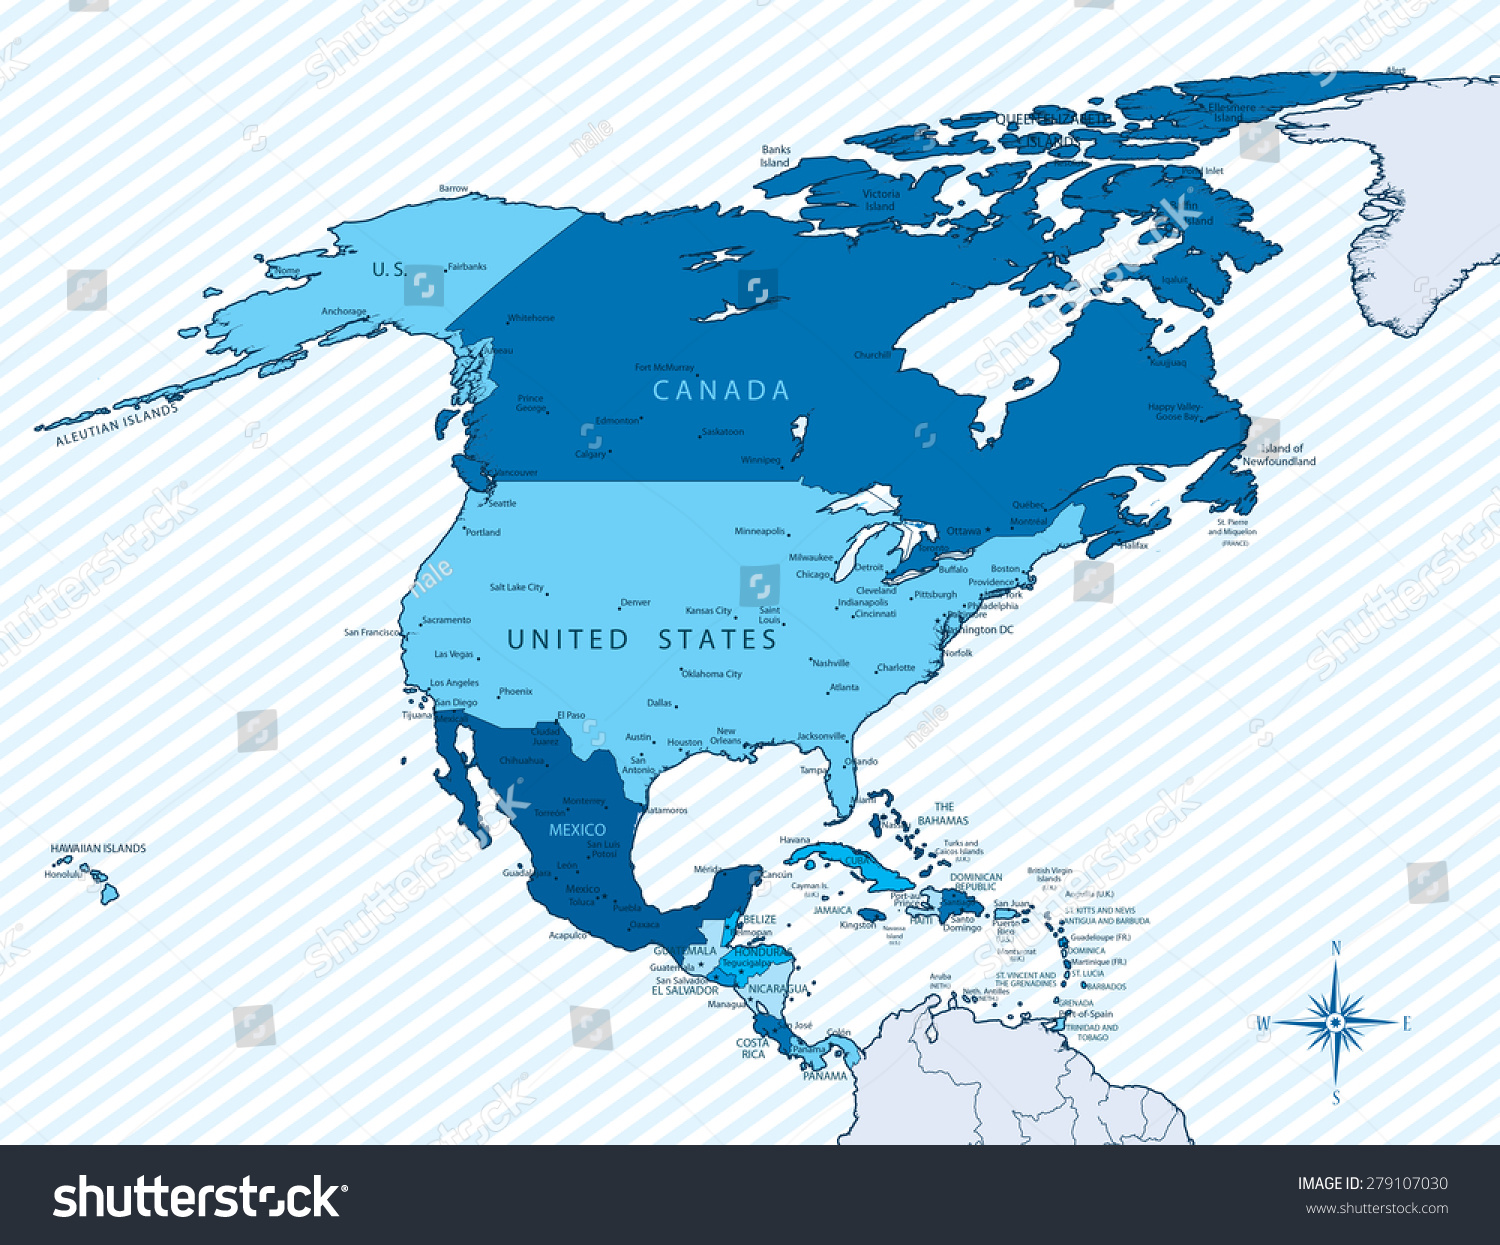 Colored Map Of North America North America Map Vector Free Vector - United states map vector free ai